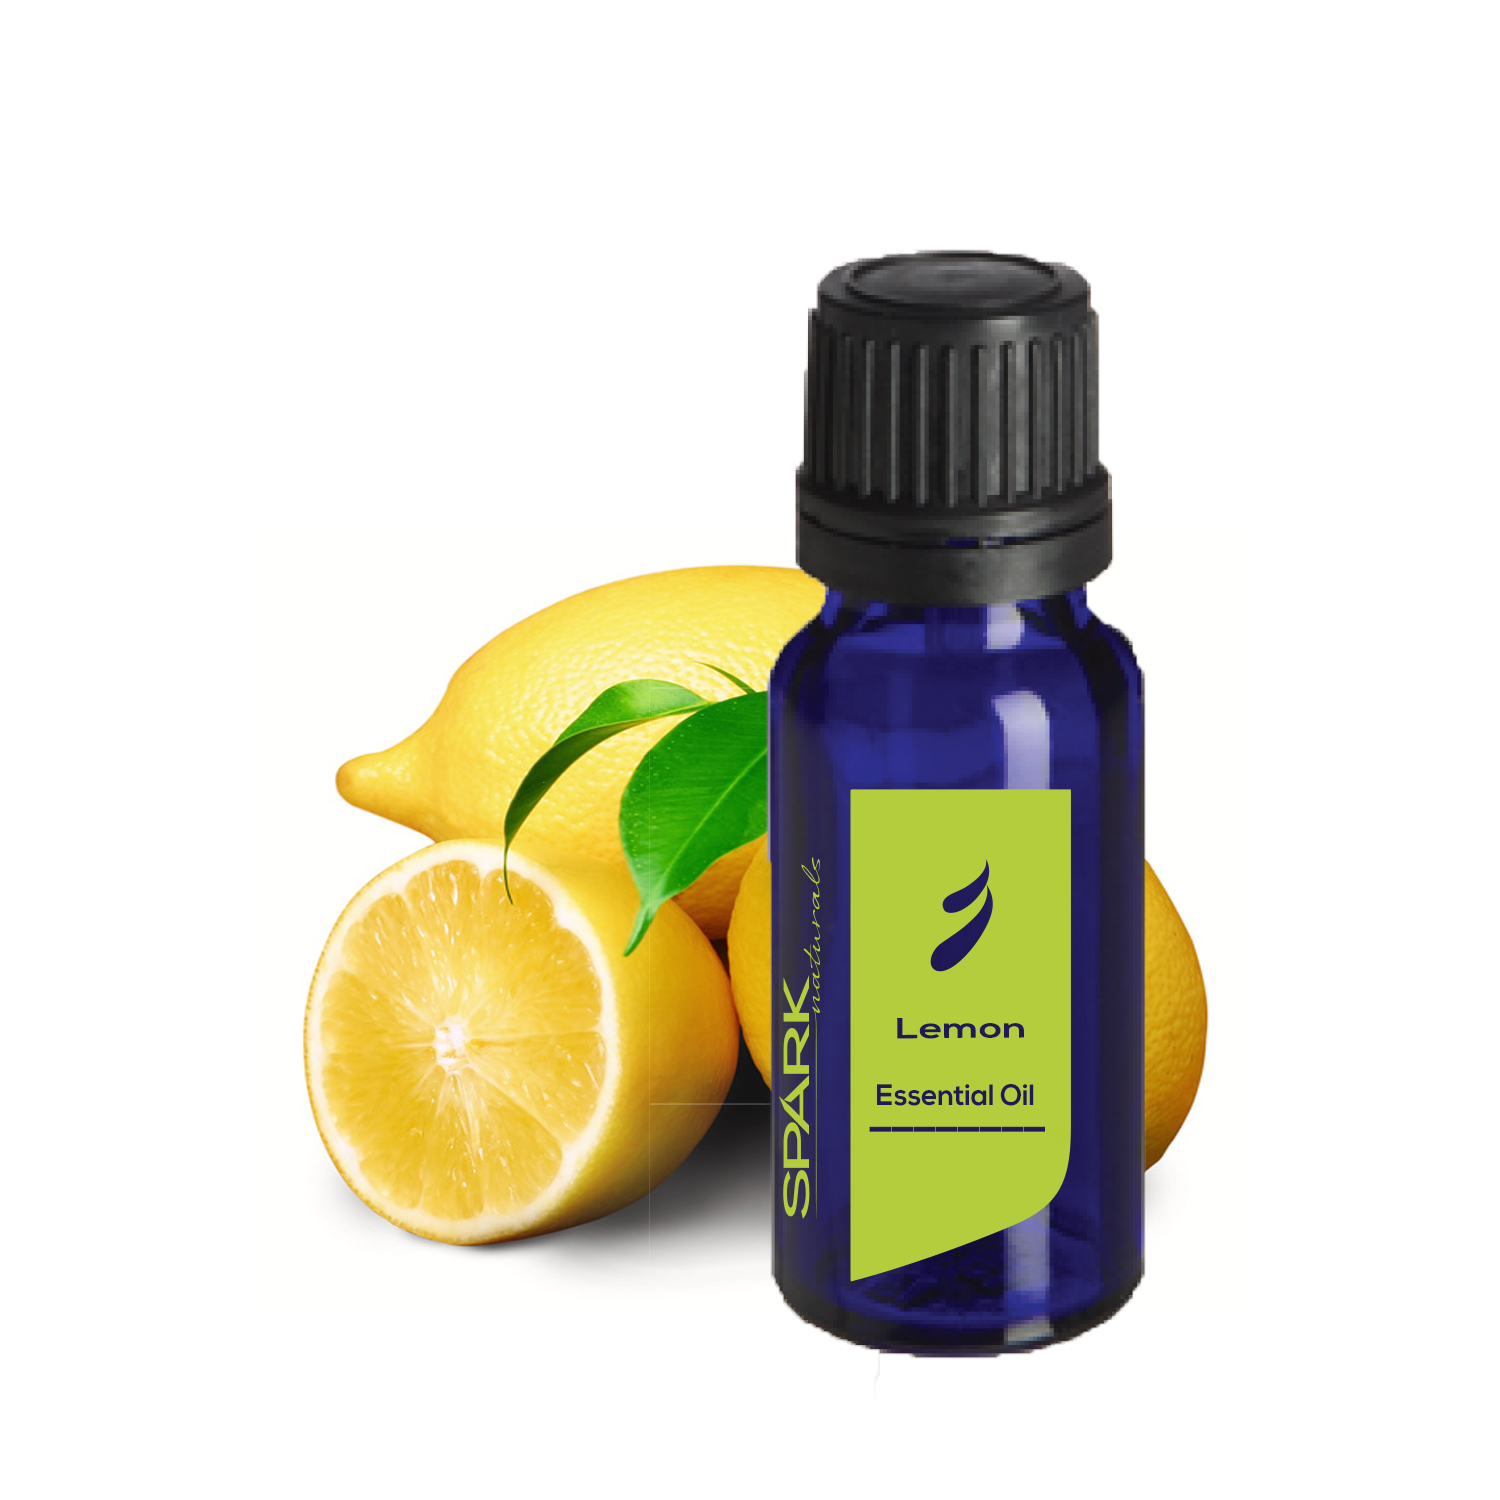 Where to find lemon essential oil